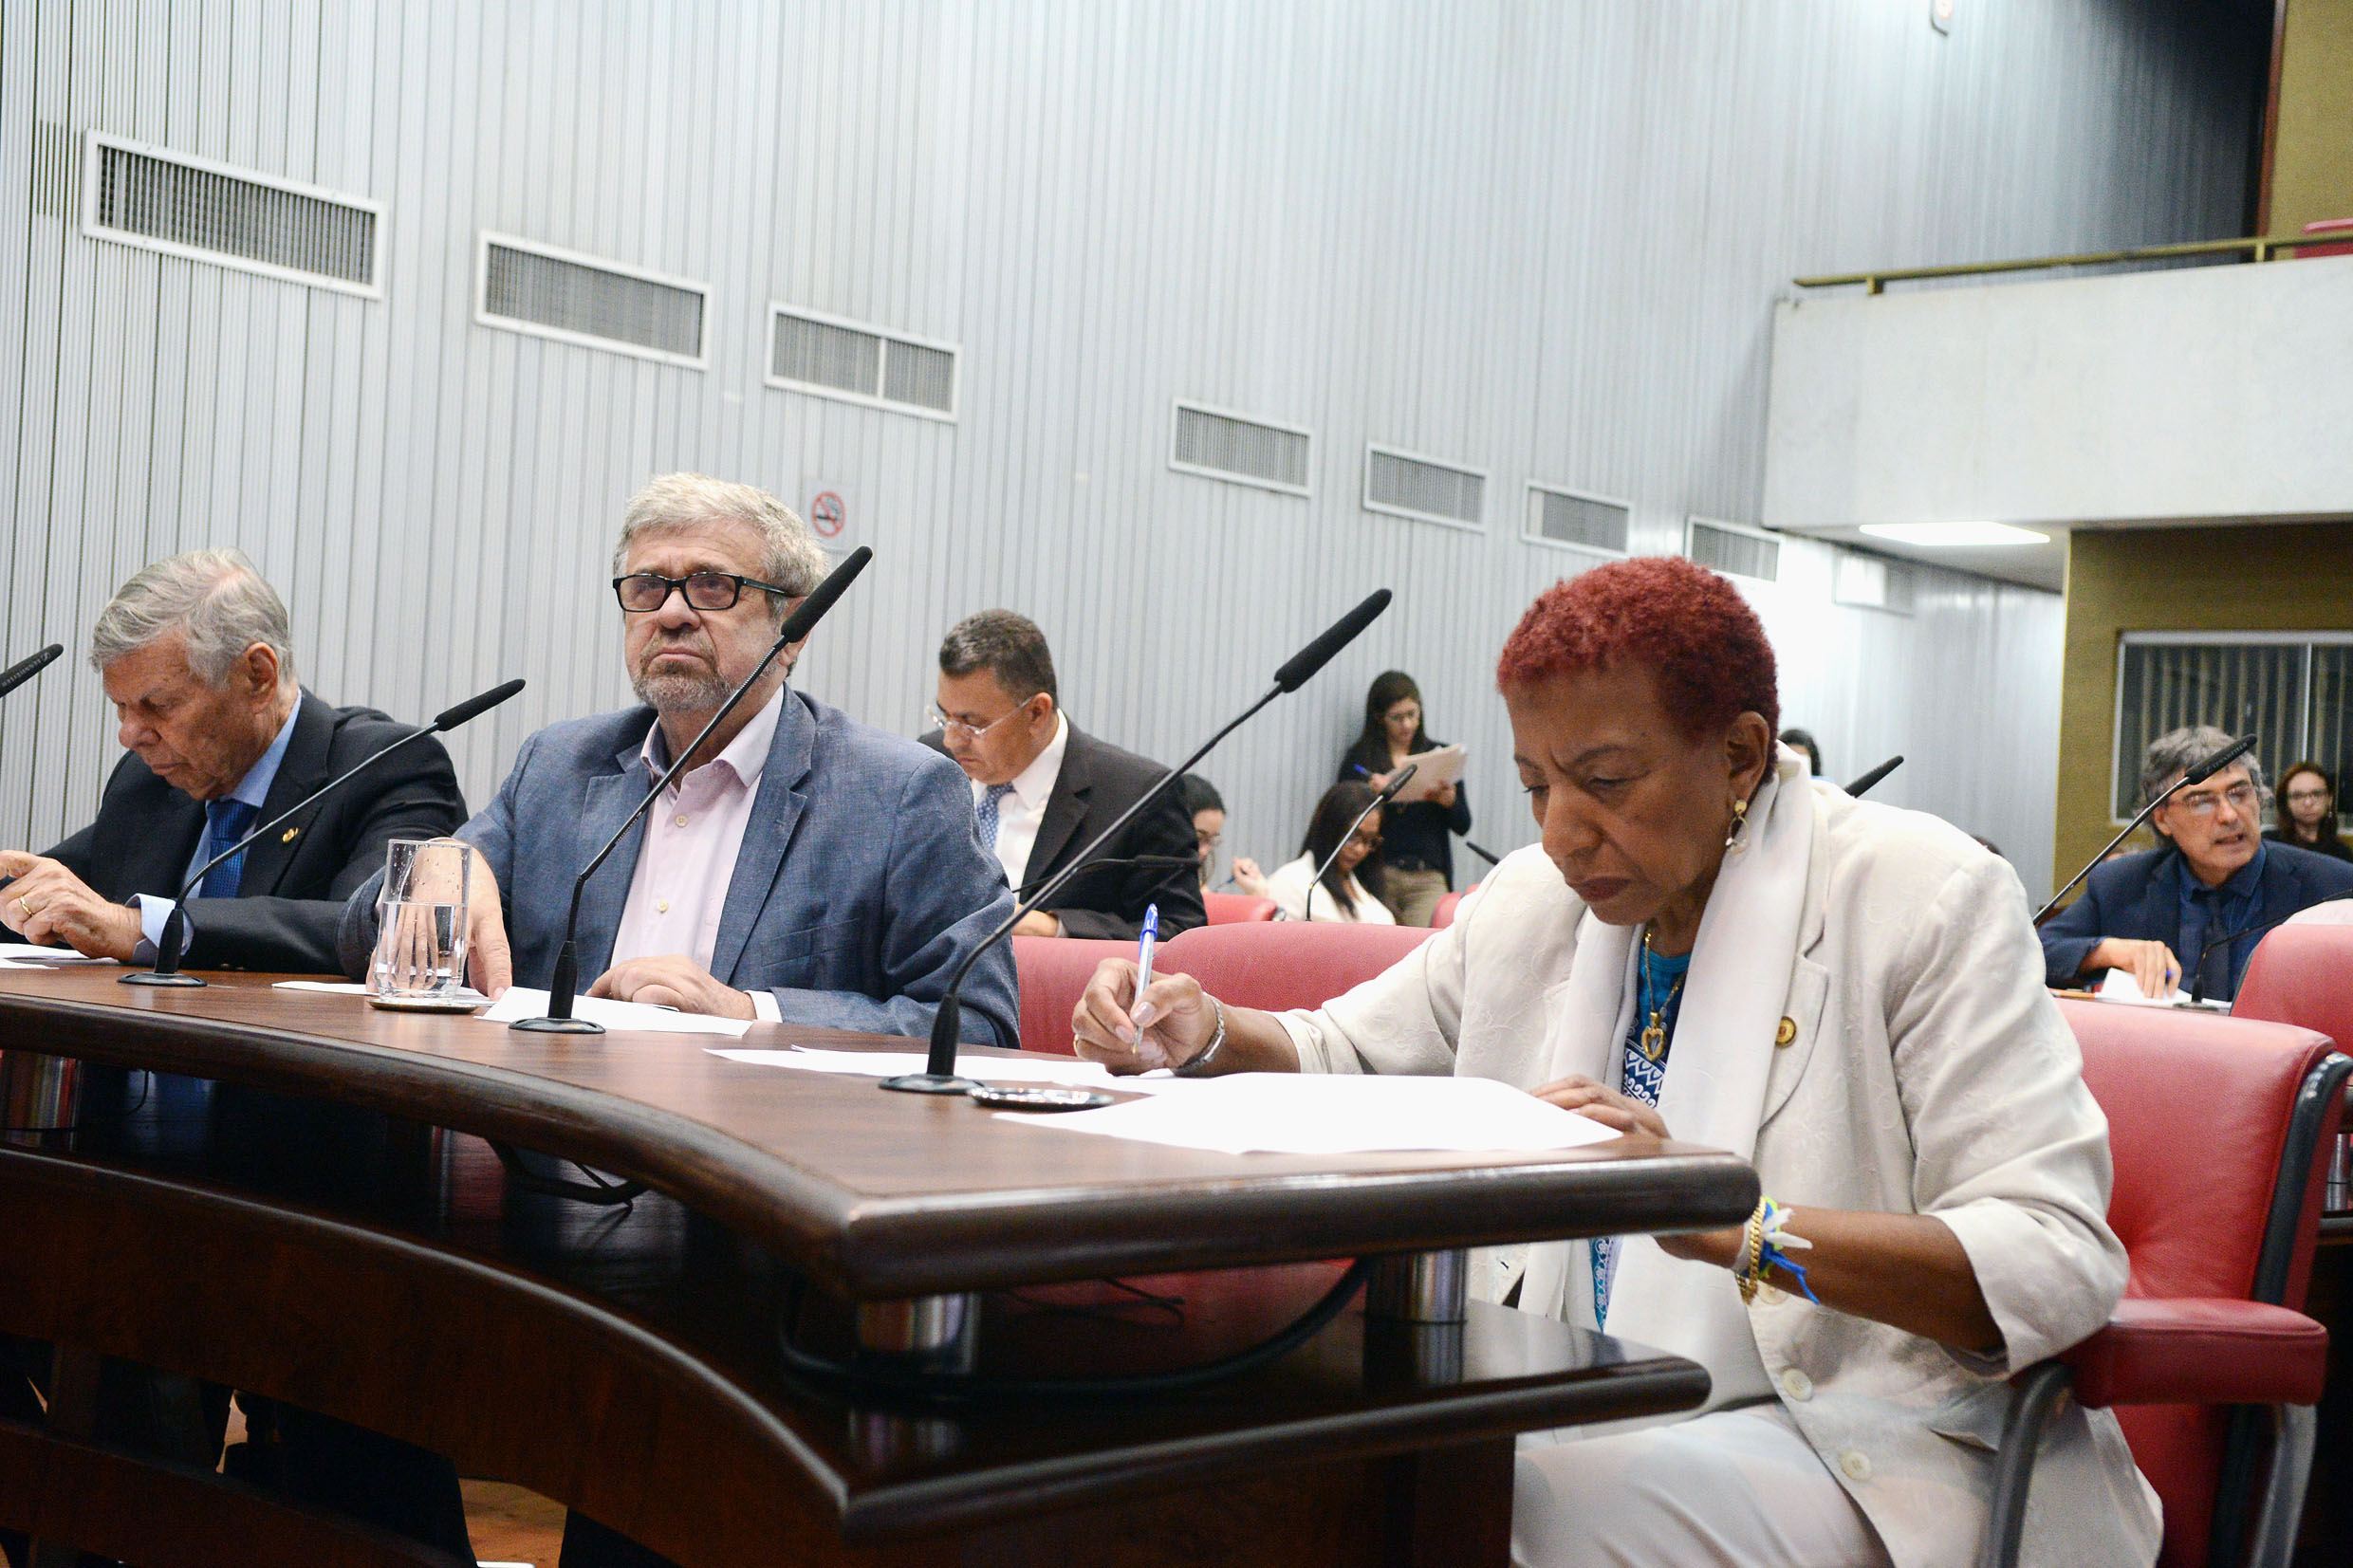 Parlamentares na comissão<a style='float:right' href='https://www3.al.sp.gov.br/repositorio/noticia/N-11-2018/fg228016.jpg' target=_blank><img src='/_img/material-file-download-white.png' width='14px' alt='Clique para baixar a imagem'></a>